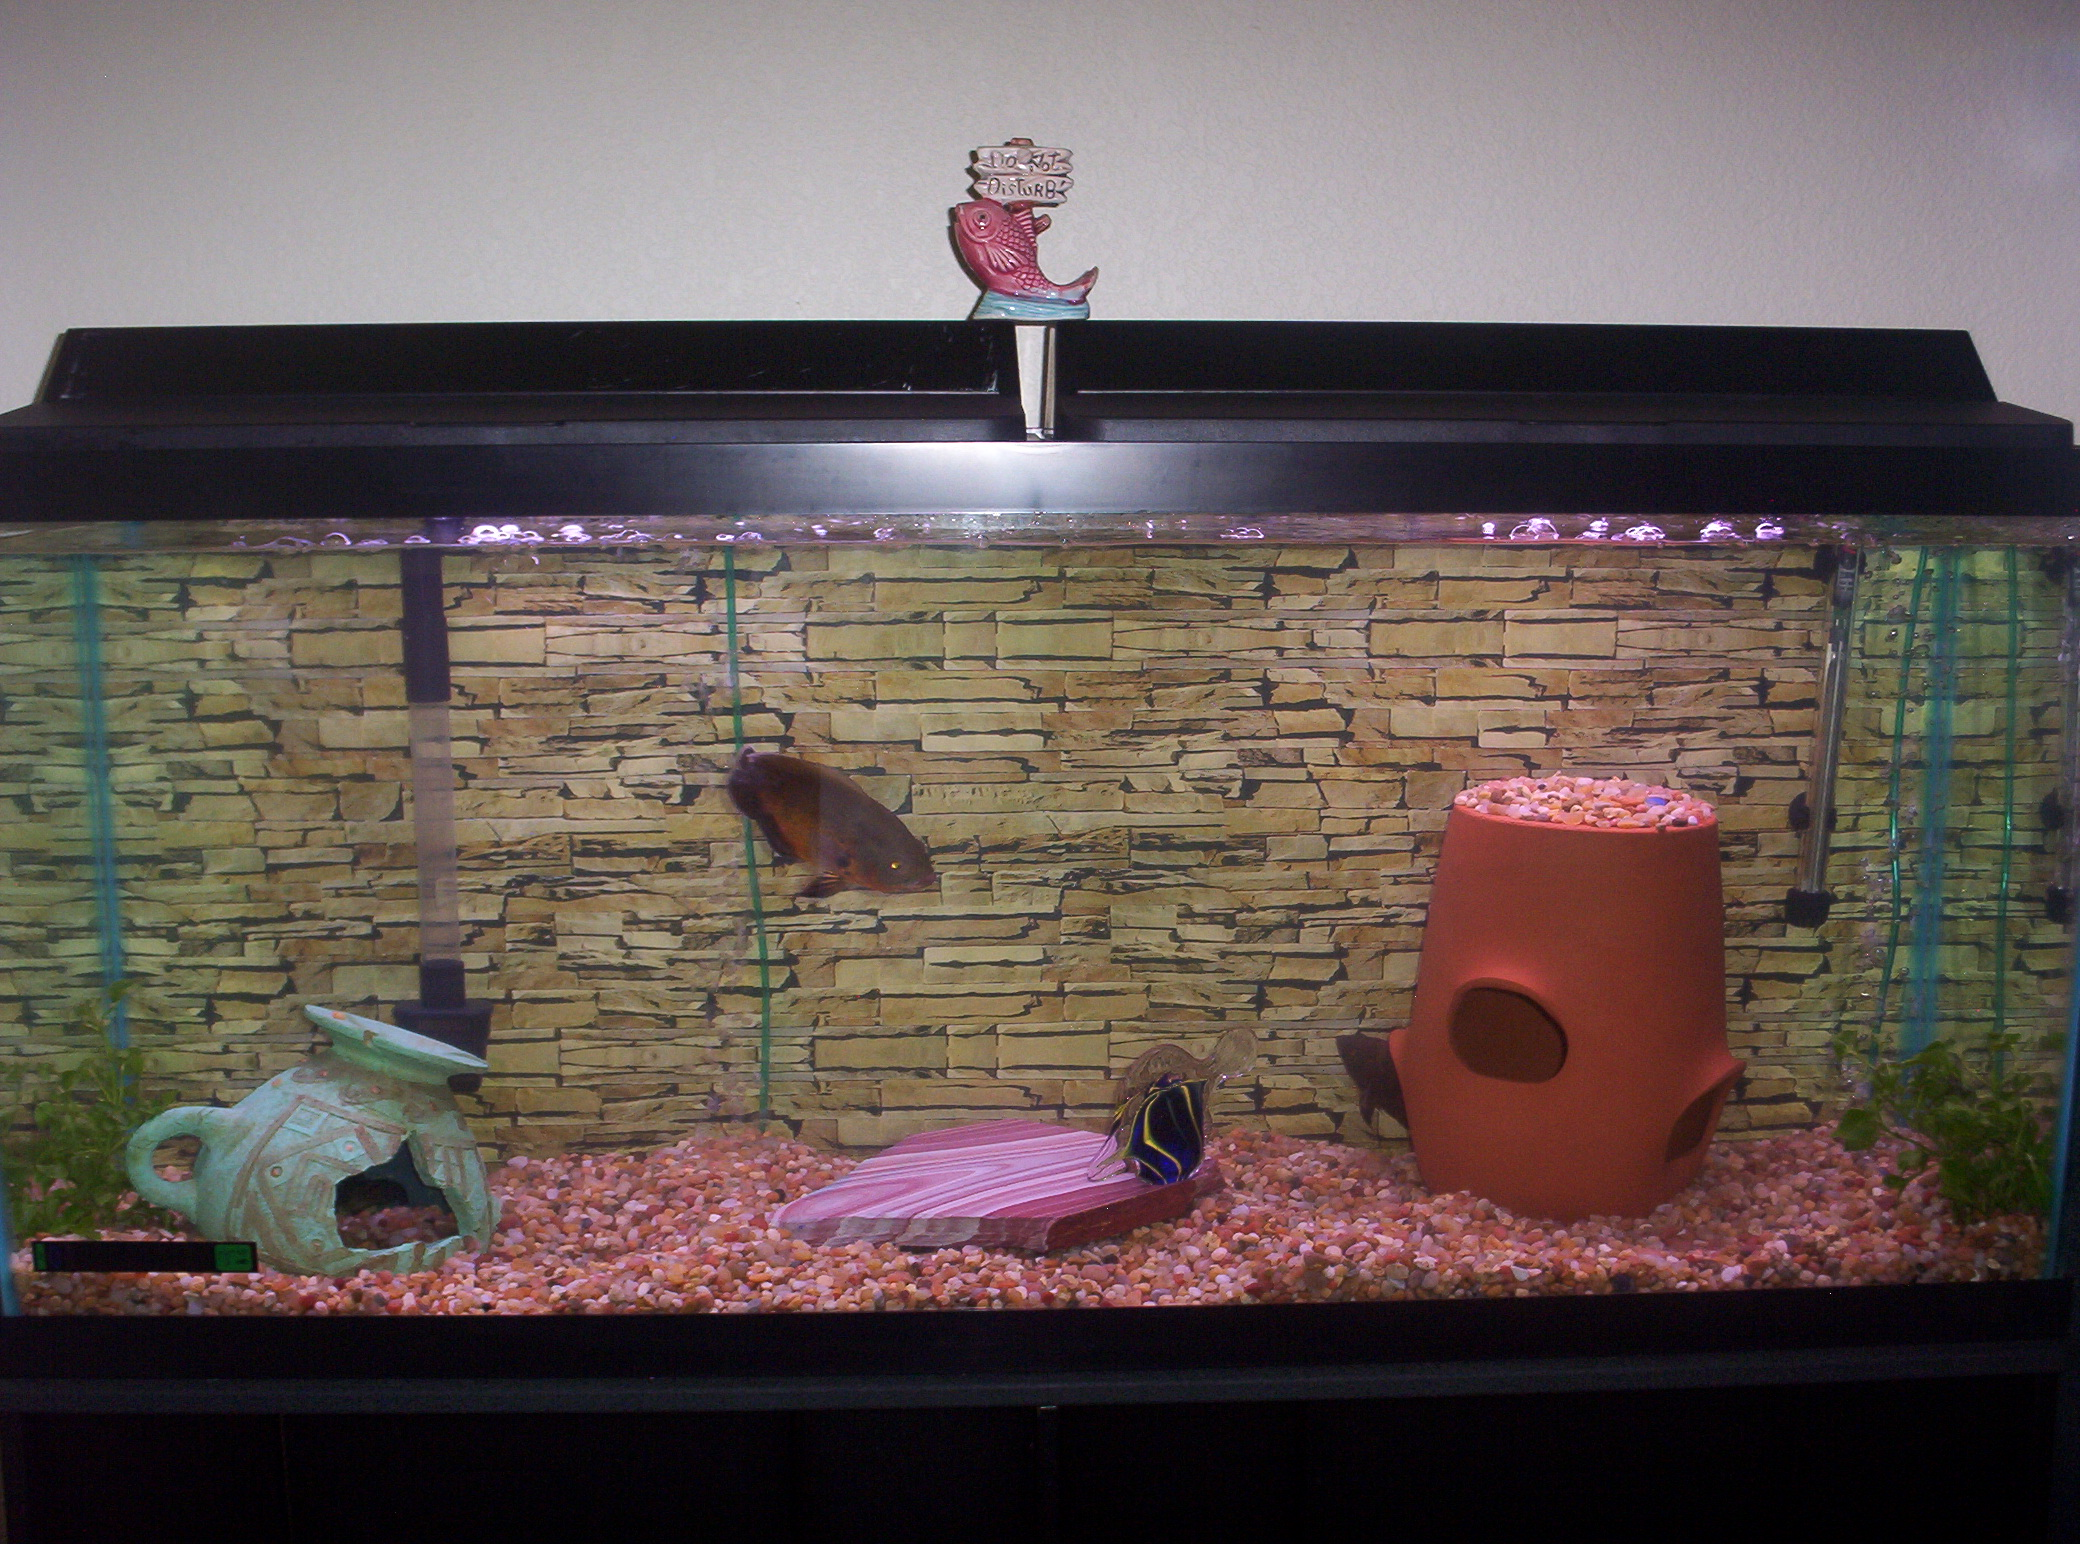 34581 45 Gallon Cichlid Tank 10 Gallon  munity 1 Gallon Guppy in addition Setting Up Fish Tank For Keeping Aquarium Fish Aquarium Fish Aquarium additionally Viewtopic moreover Showthread furthermore A feeder in front of Bronco a wild oscar. on oscar cichlid in 10 gal tank